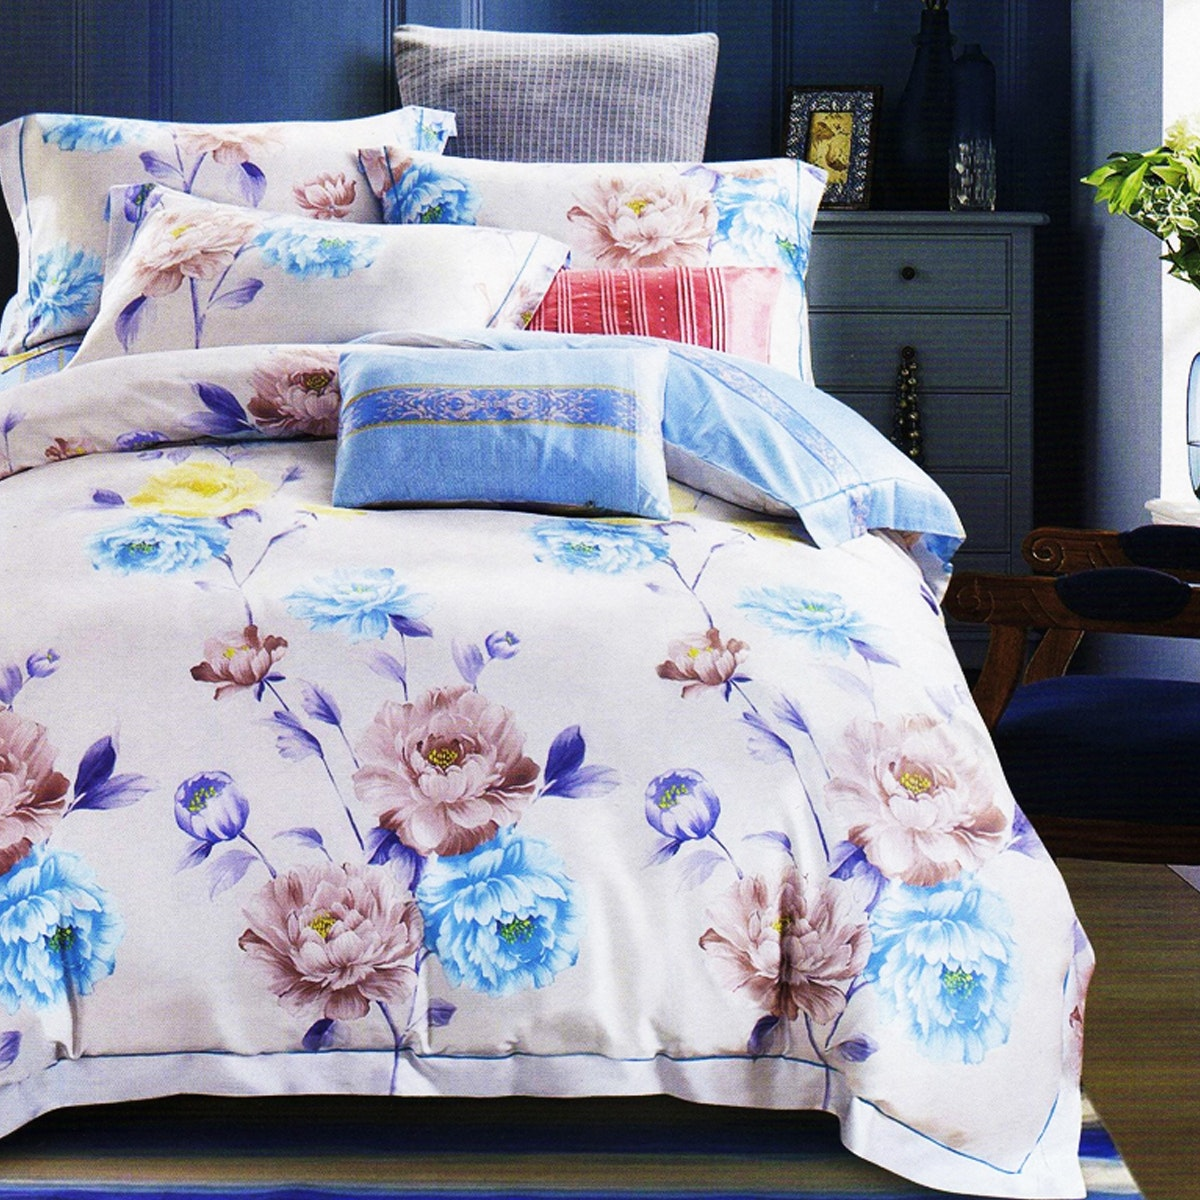 Sleep Buddy Set Sprei dan Bed Cover Blue Floral Line Cotton sateen 160x200x30